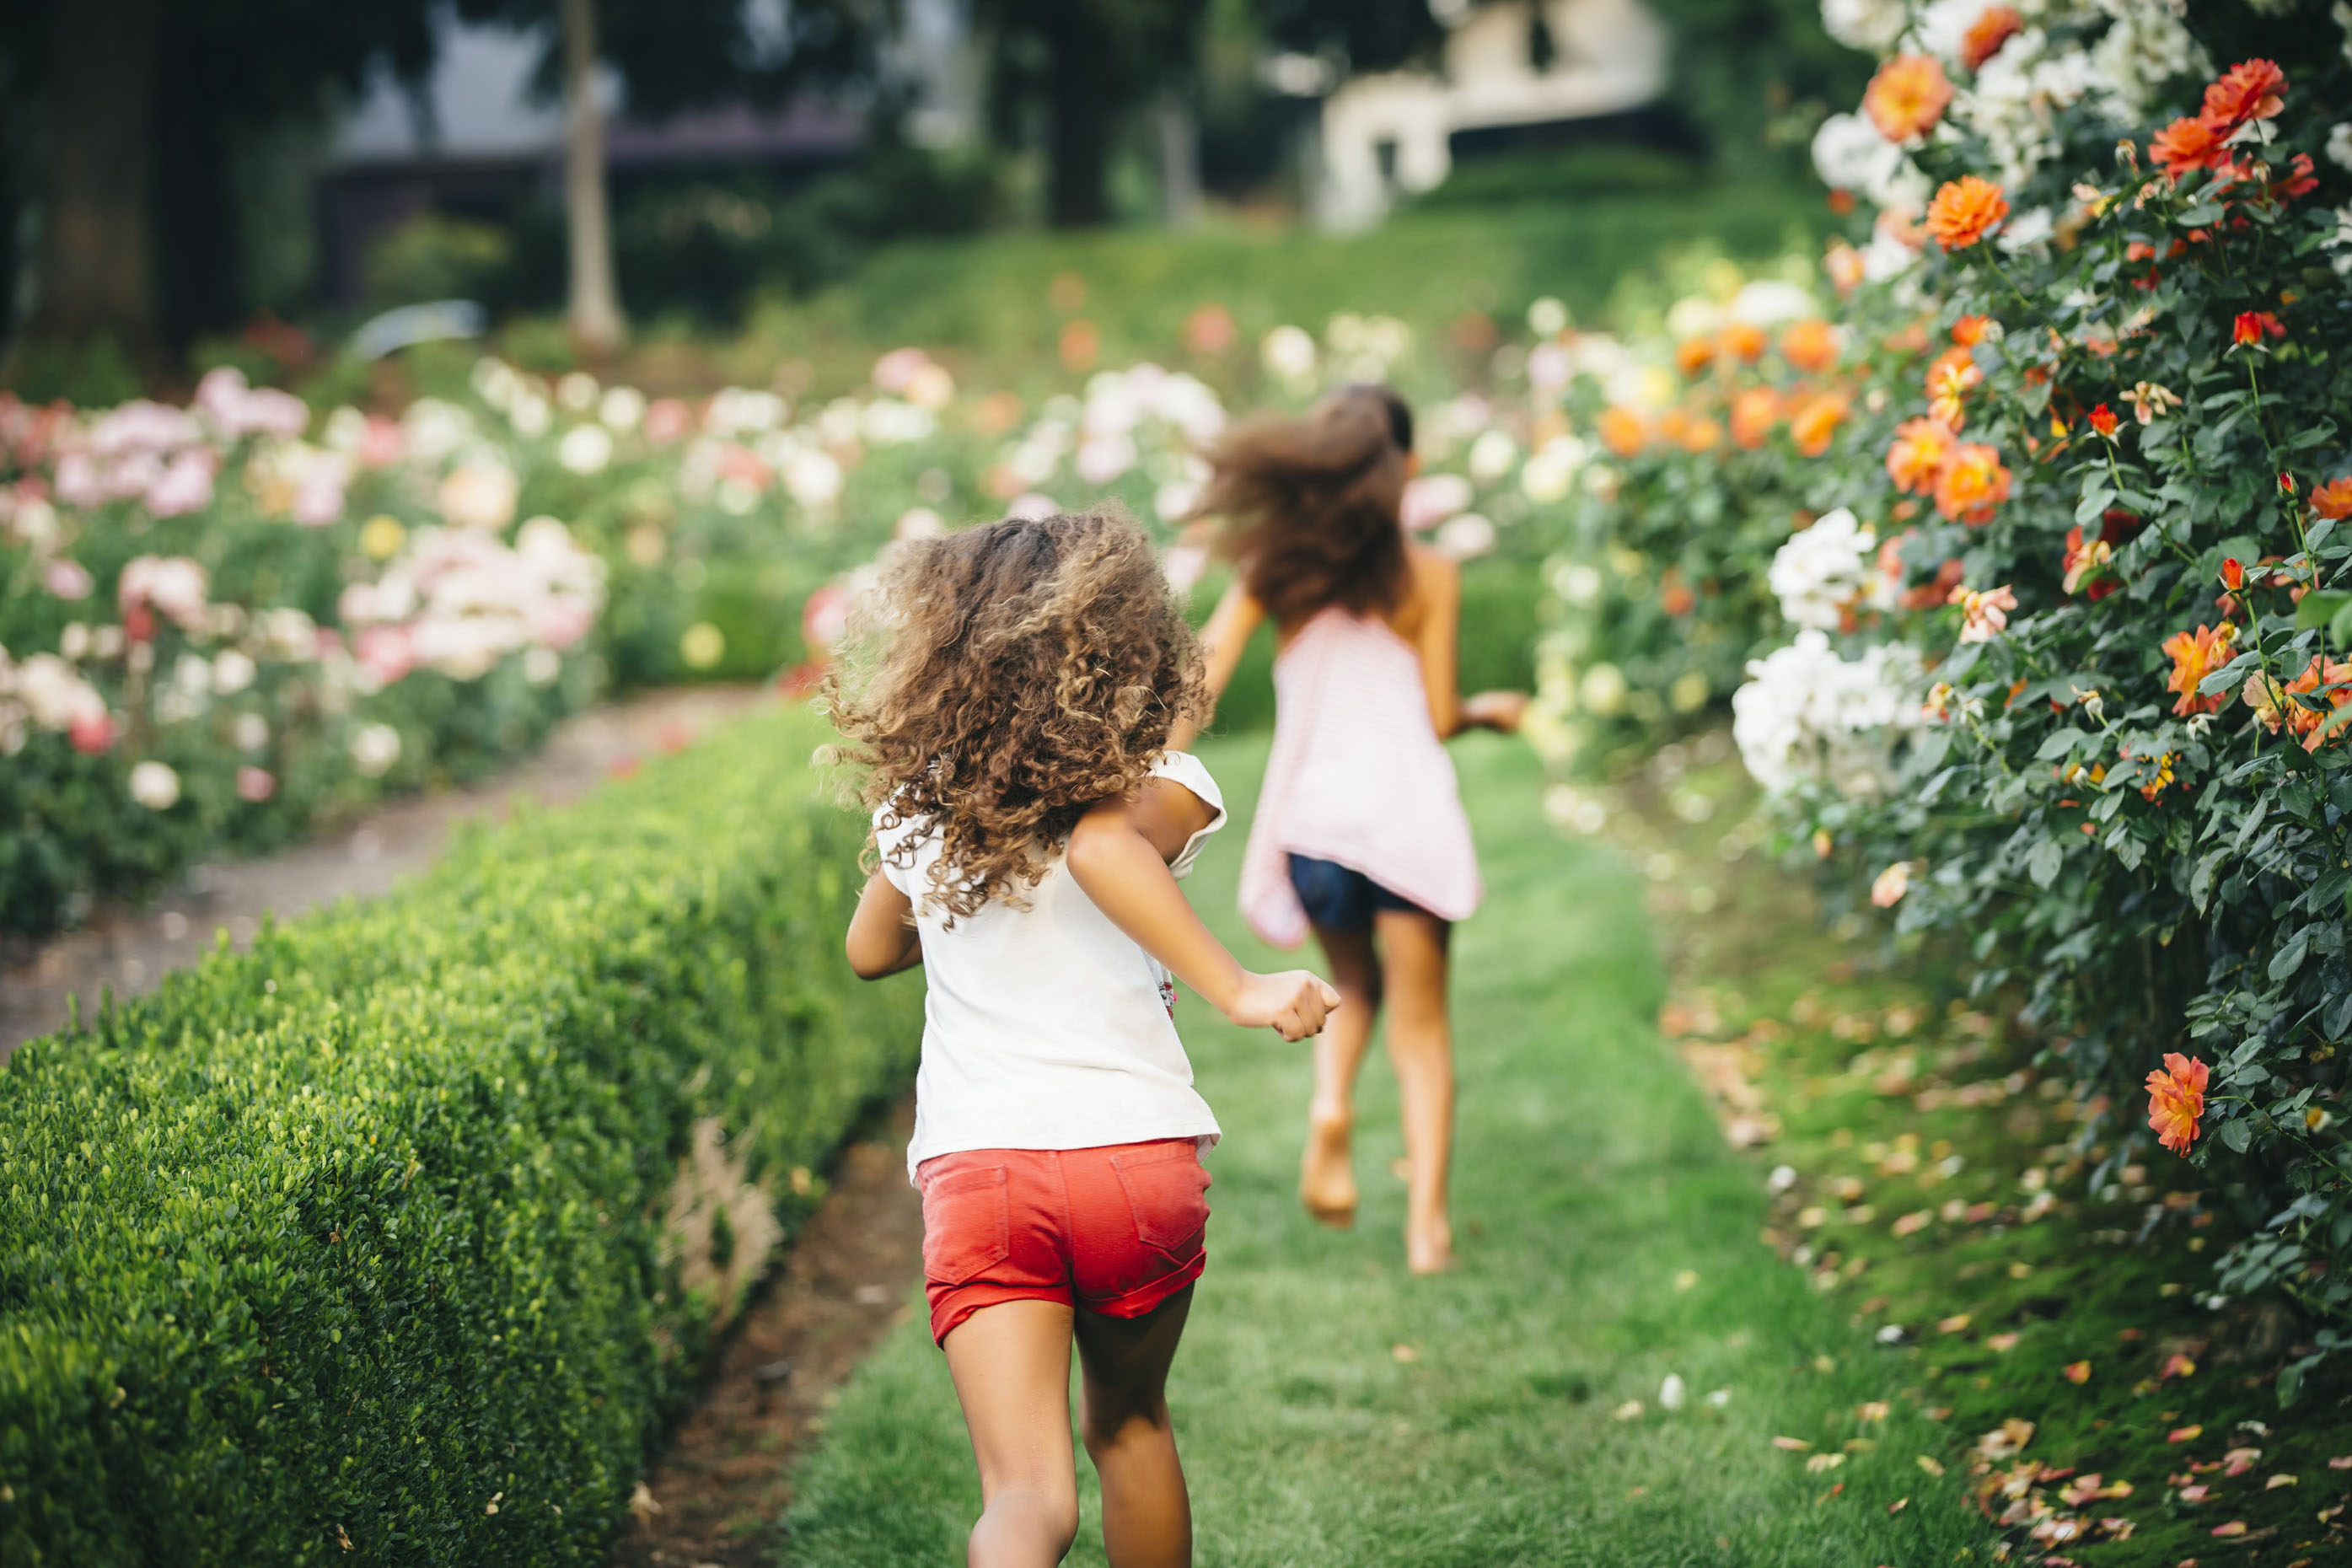 Inti St Clair photo of girls running through a rose garden